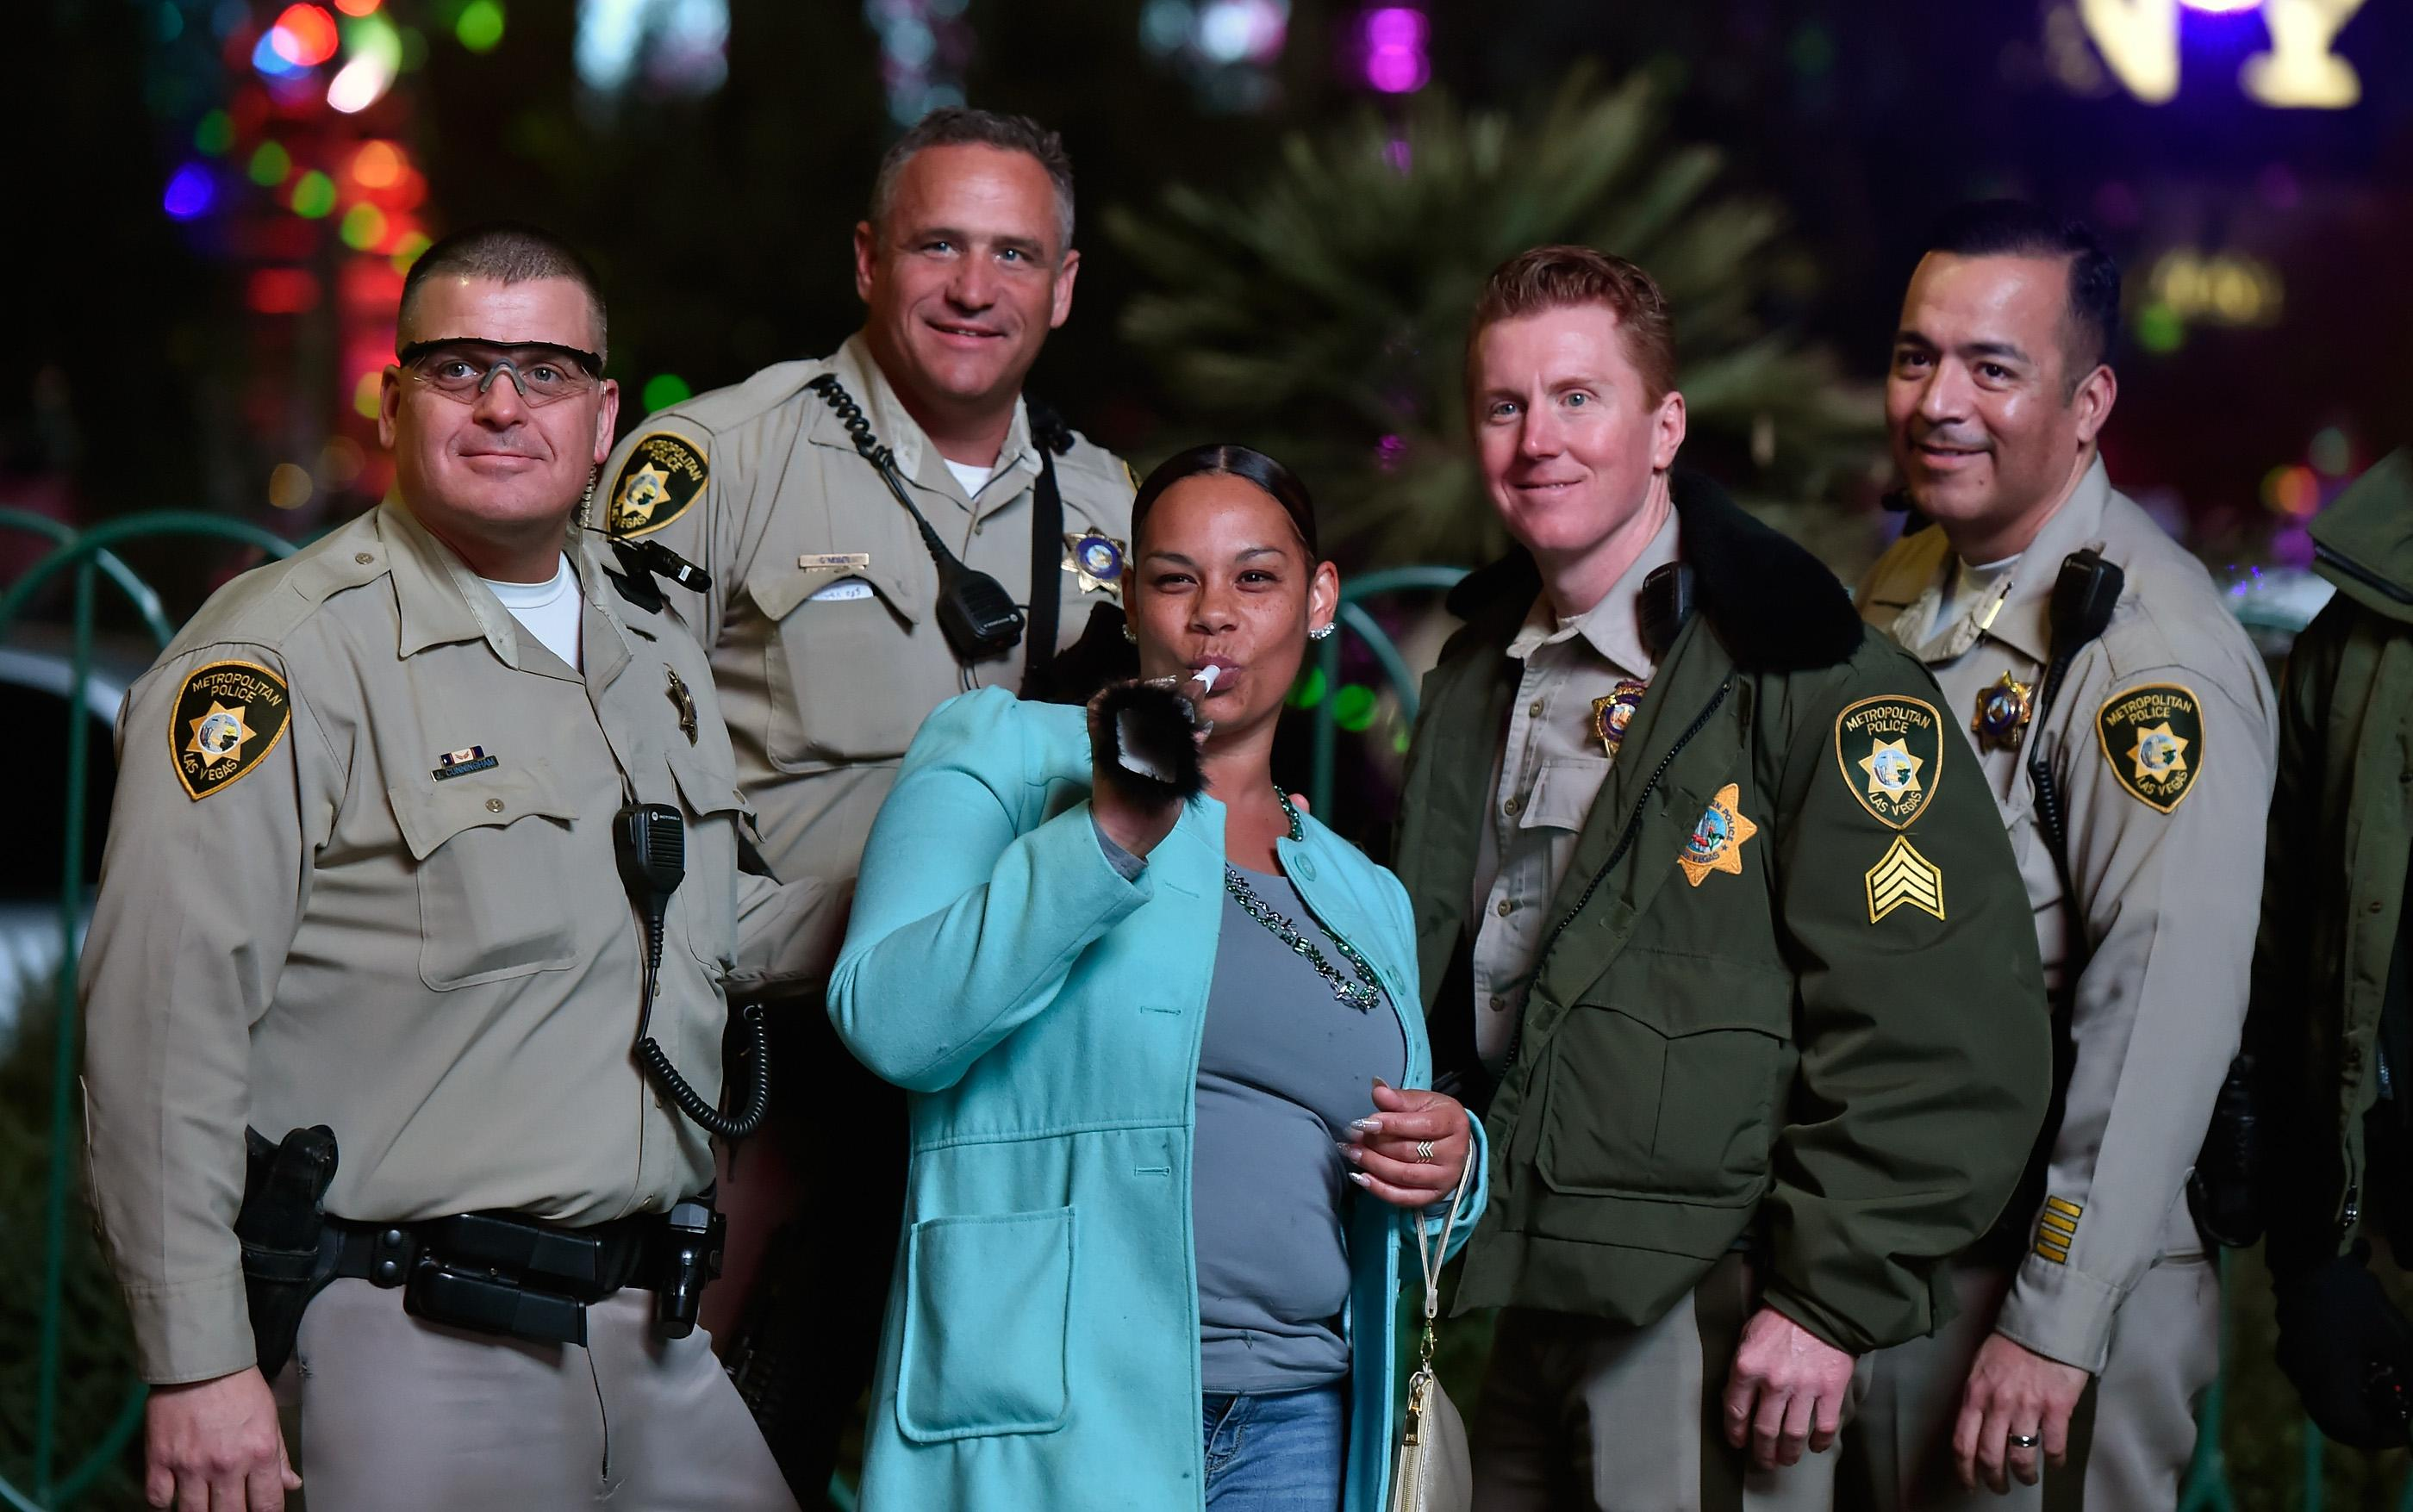 A reveler poses with members of the Las Vegas police as she celebrates New Year's Eve along the Las Vegas Strip Sunday, Dec. 31, 2017, in Las Vegas. CREDIT: David Becker/Las Vegas News Bureau